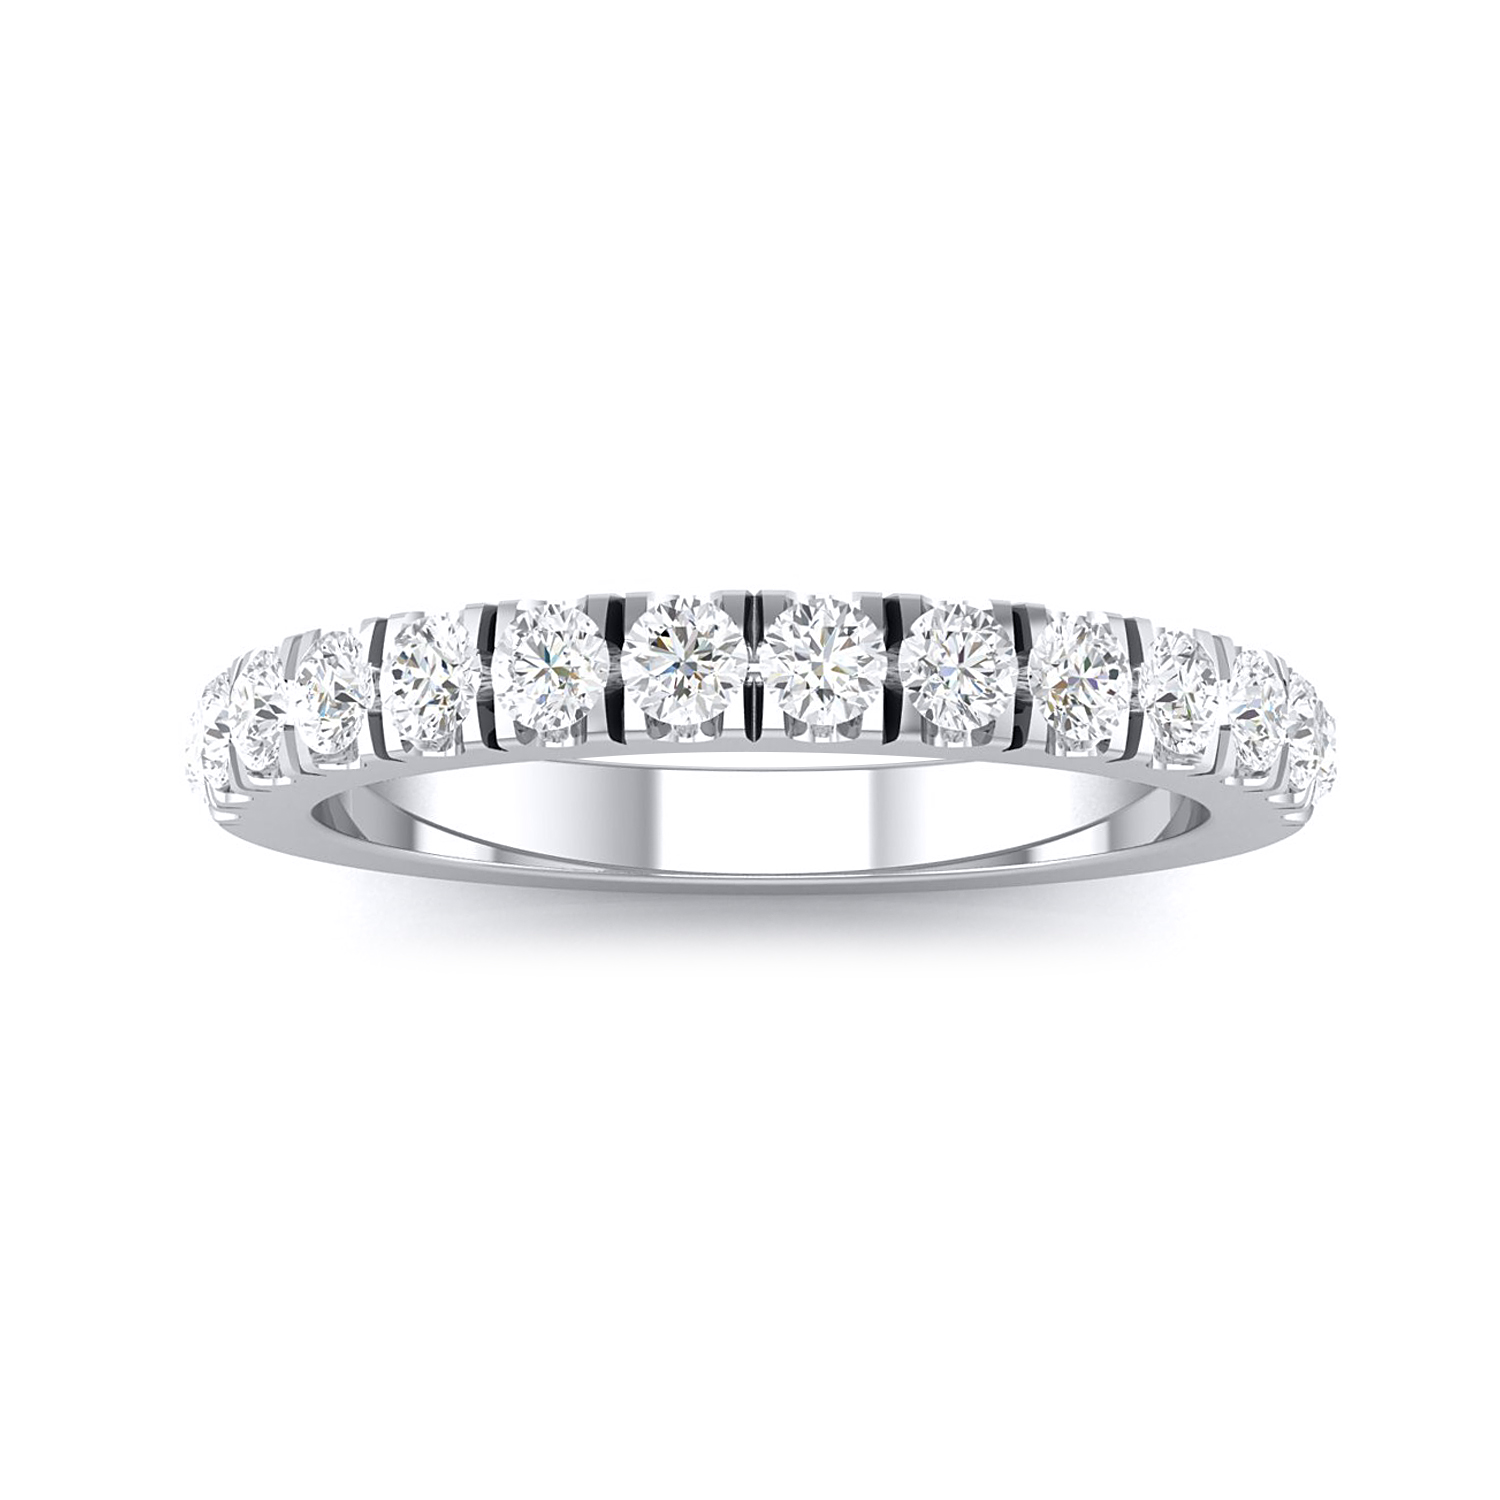 CAROLINE Classic Diamond Wedding Ring In 14K White Gold with 0.50 cttw